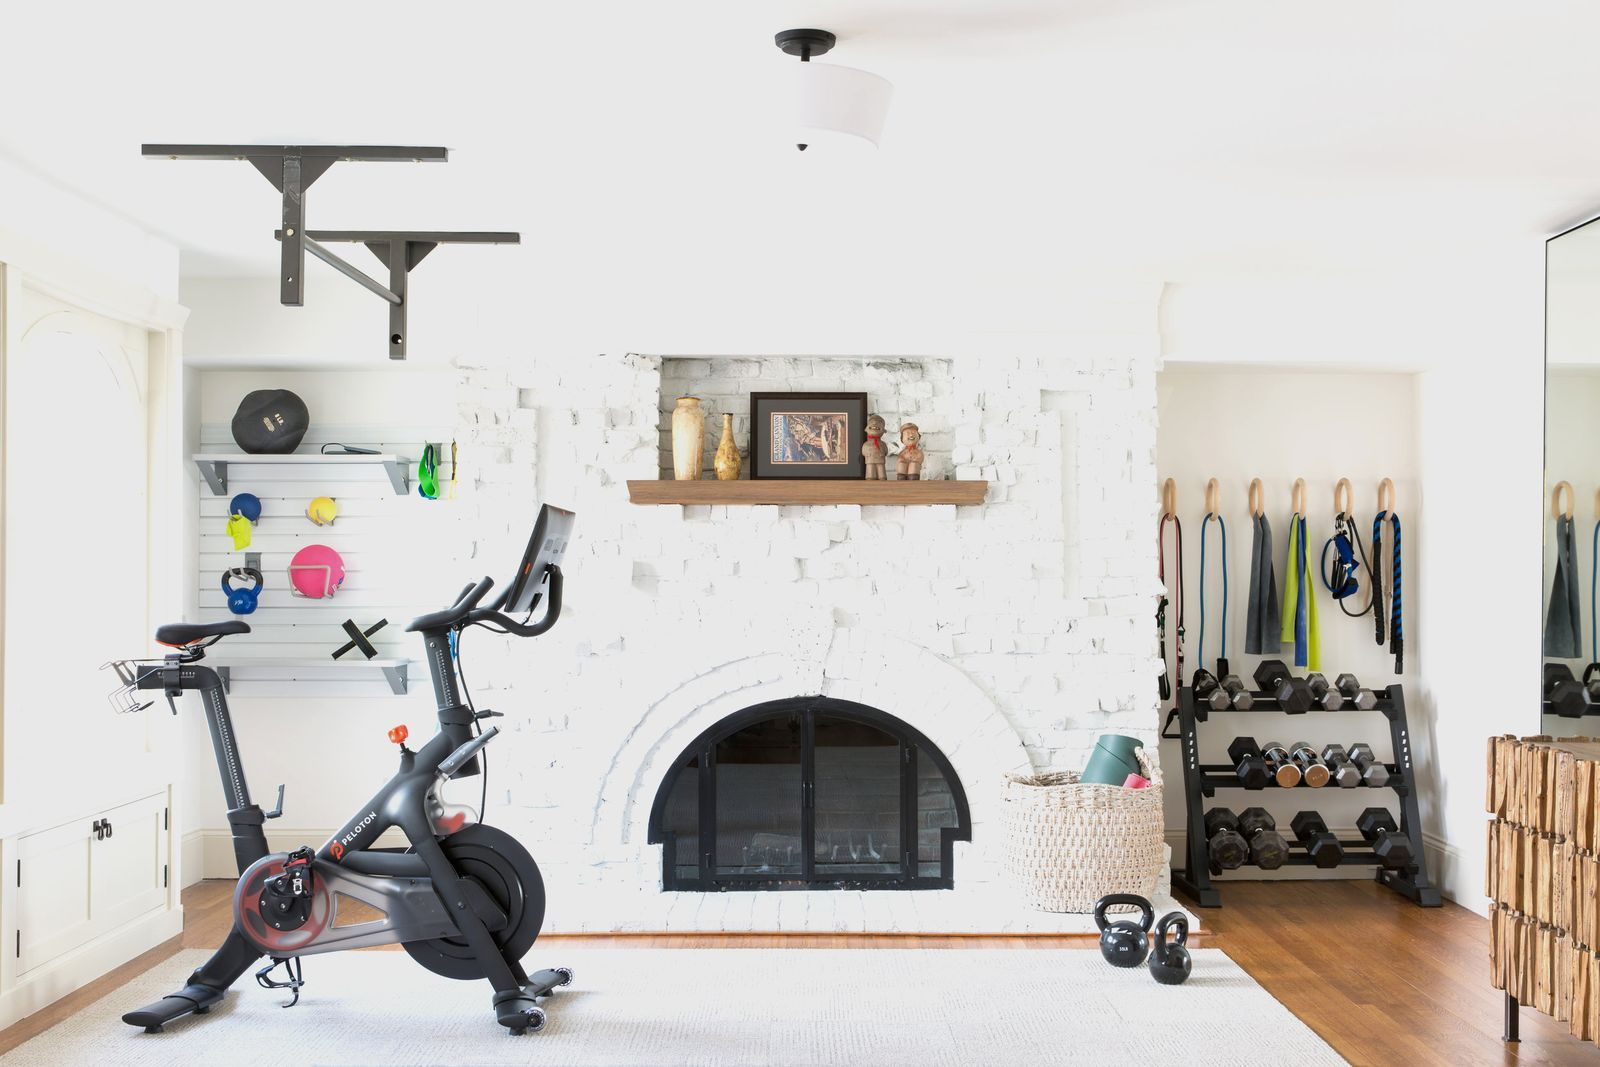 15 Home Gym Ideas That Will Actually Make You Want To Work Out In 2020 Home Gym Decor Gym Decor Home Gym Set